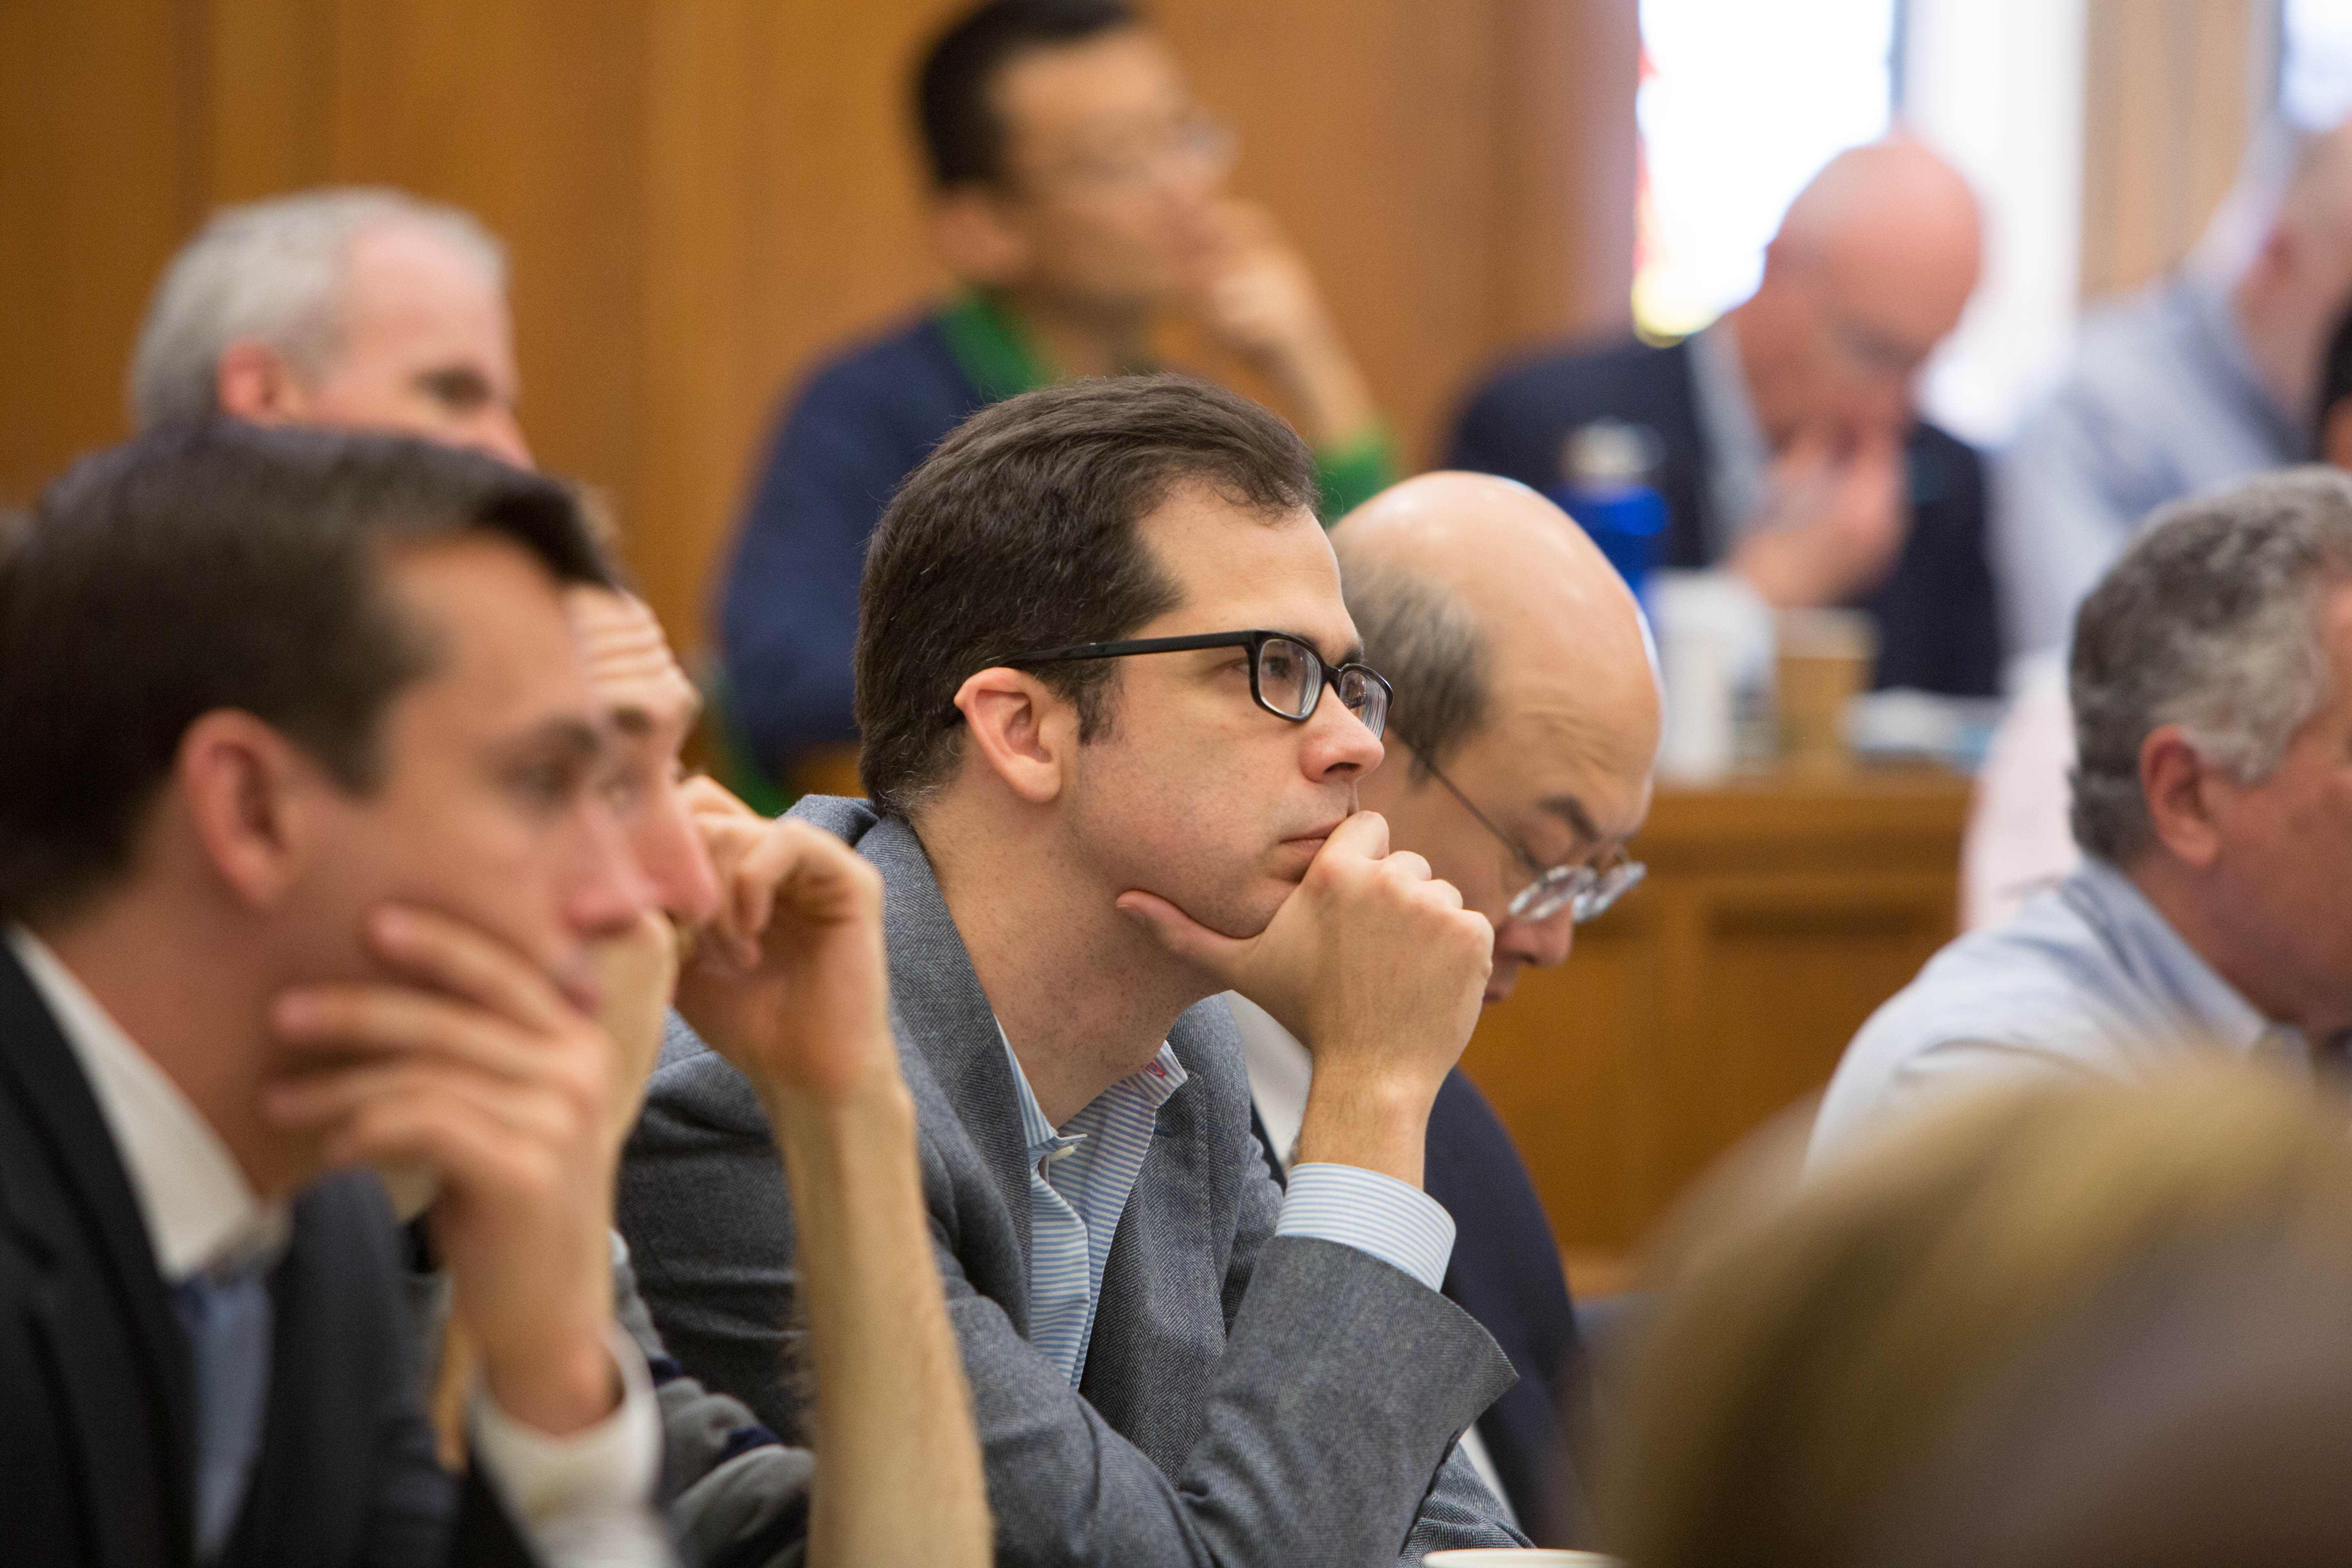 Columbia Law Prof. Robert Jackson, NYU Law Prof. Ryan Bubb '05 and MIT Sloan Prof. Andrew Lo